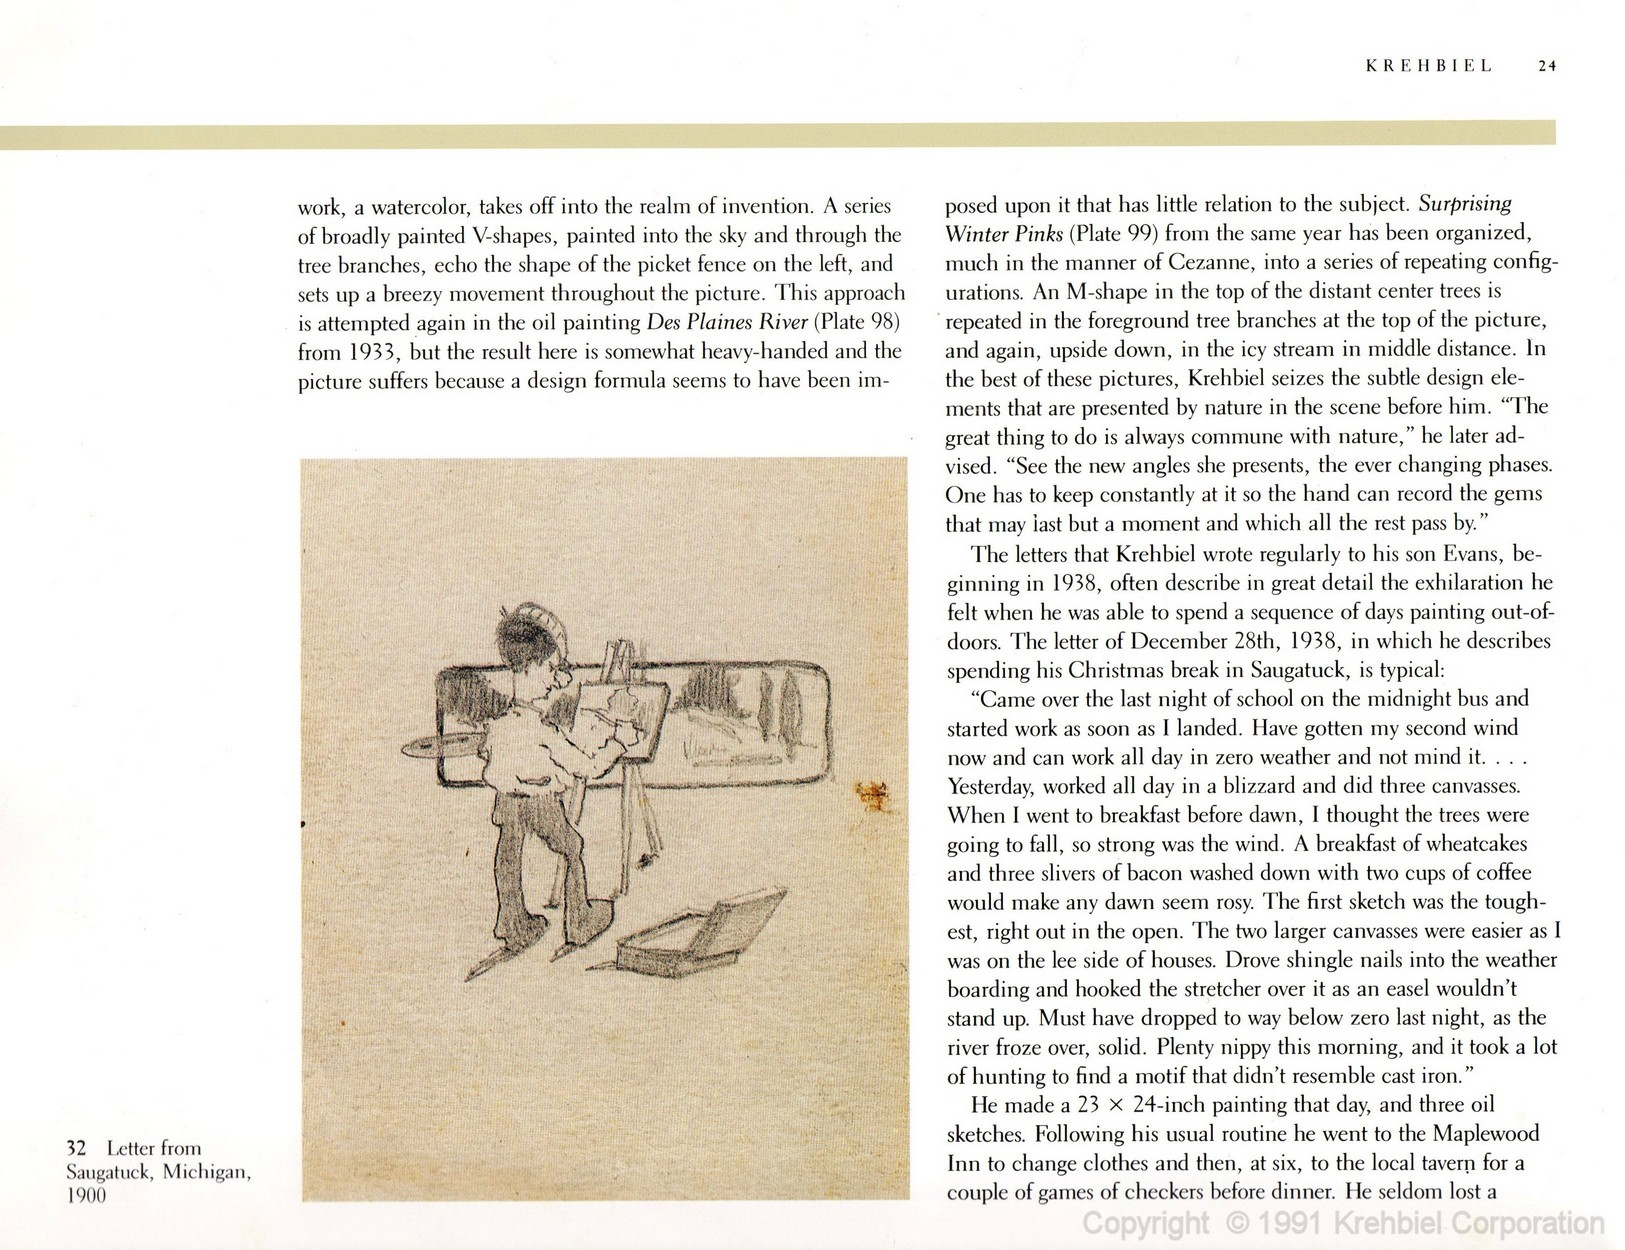 Page 24 of Krehbiel - Life and Works of an American Artist